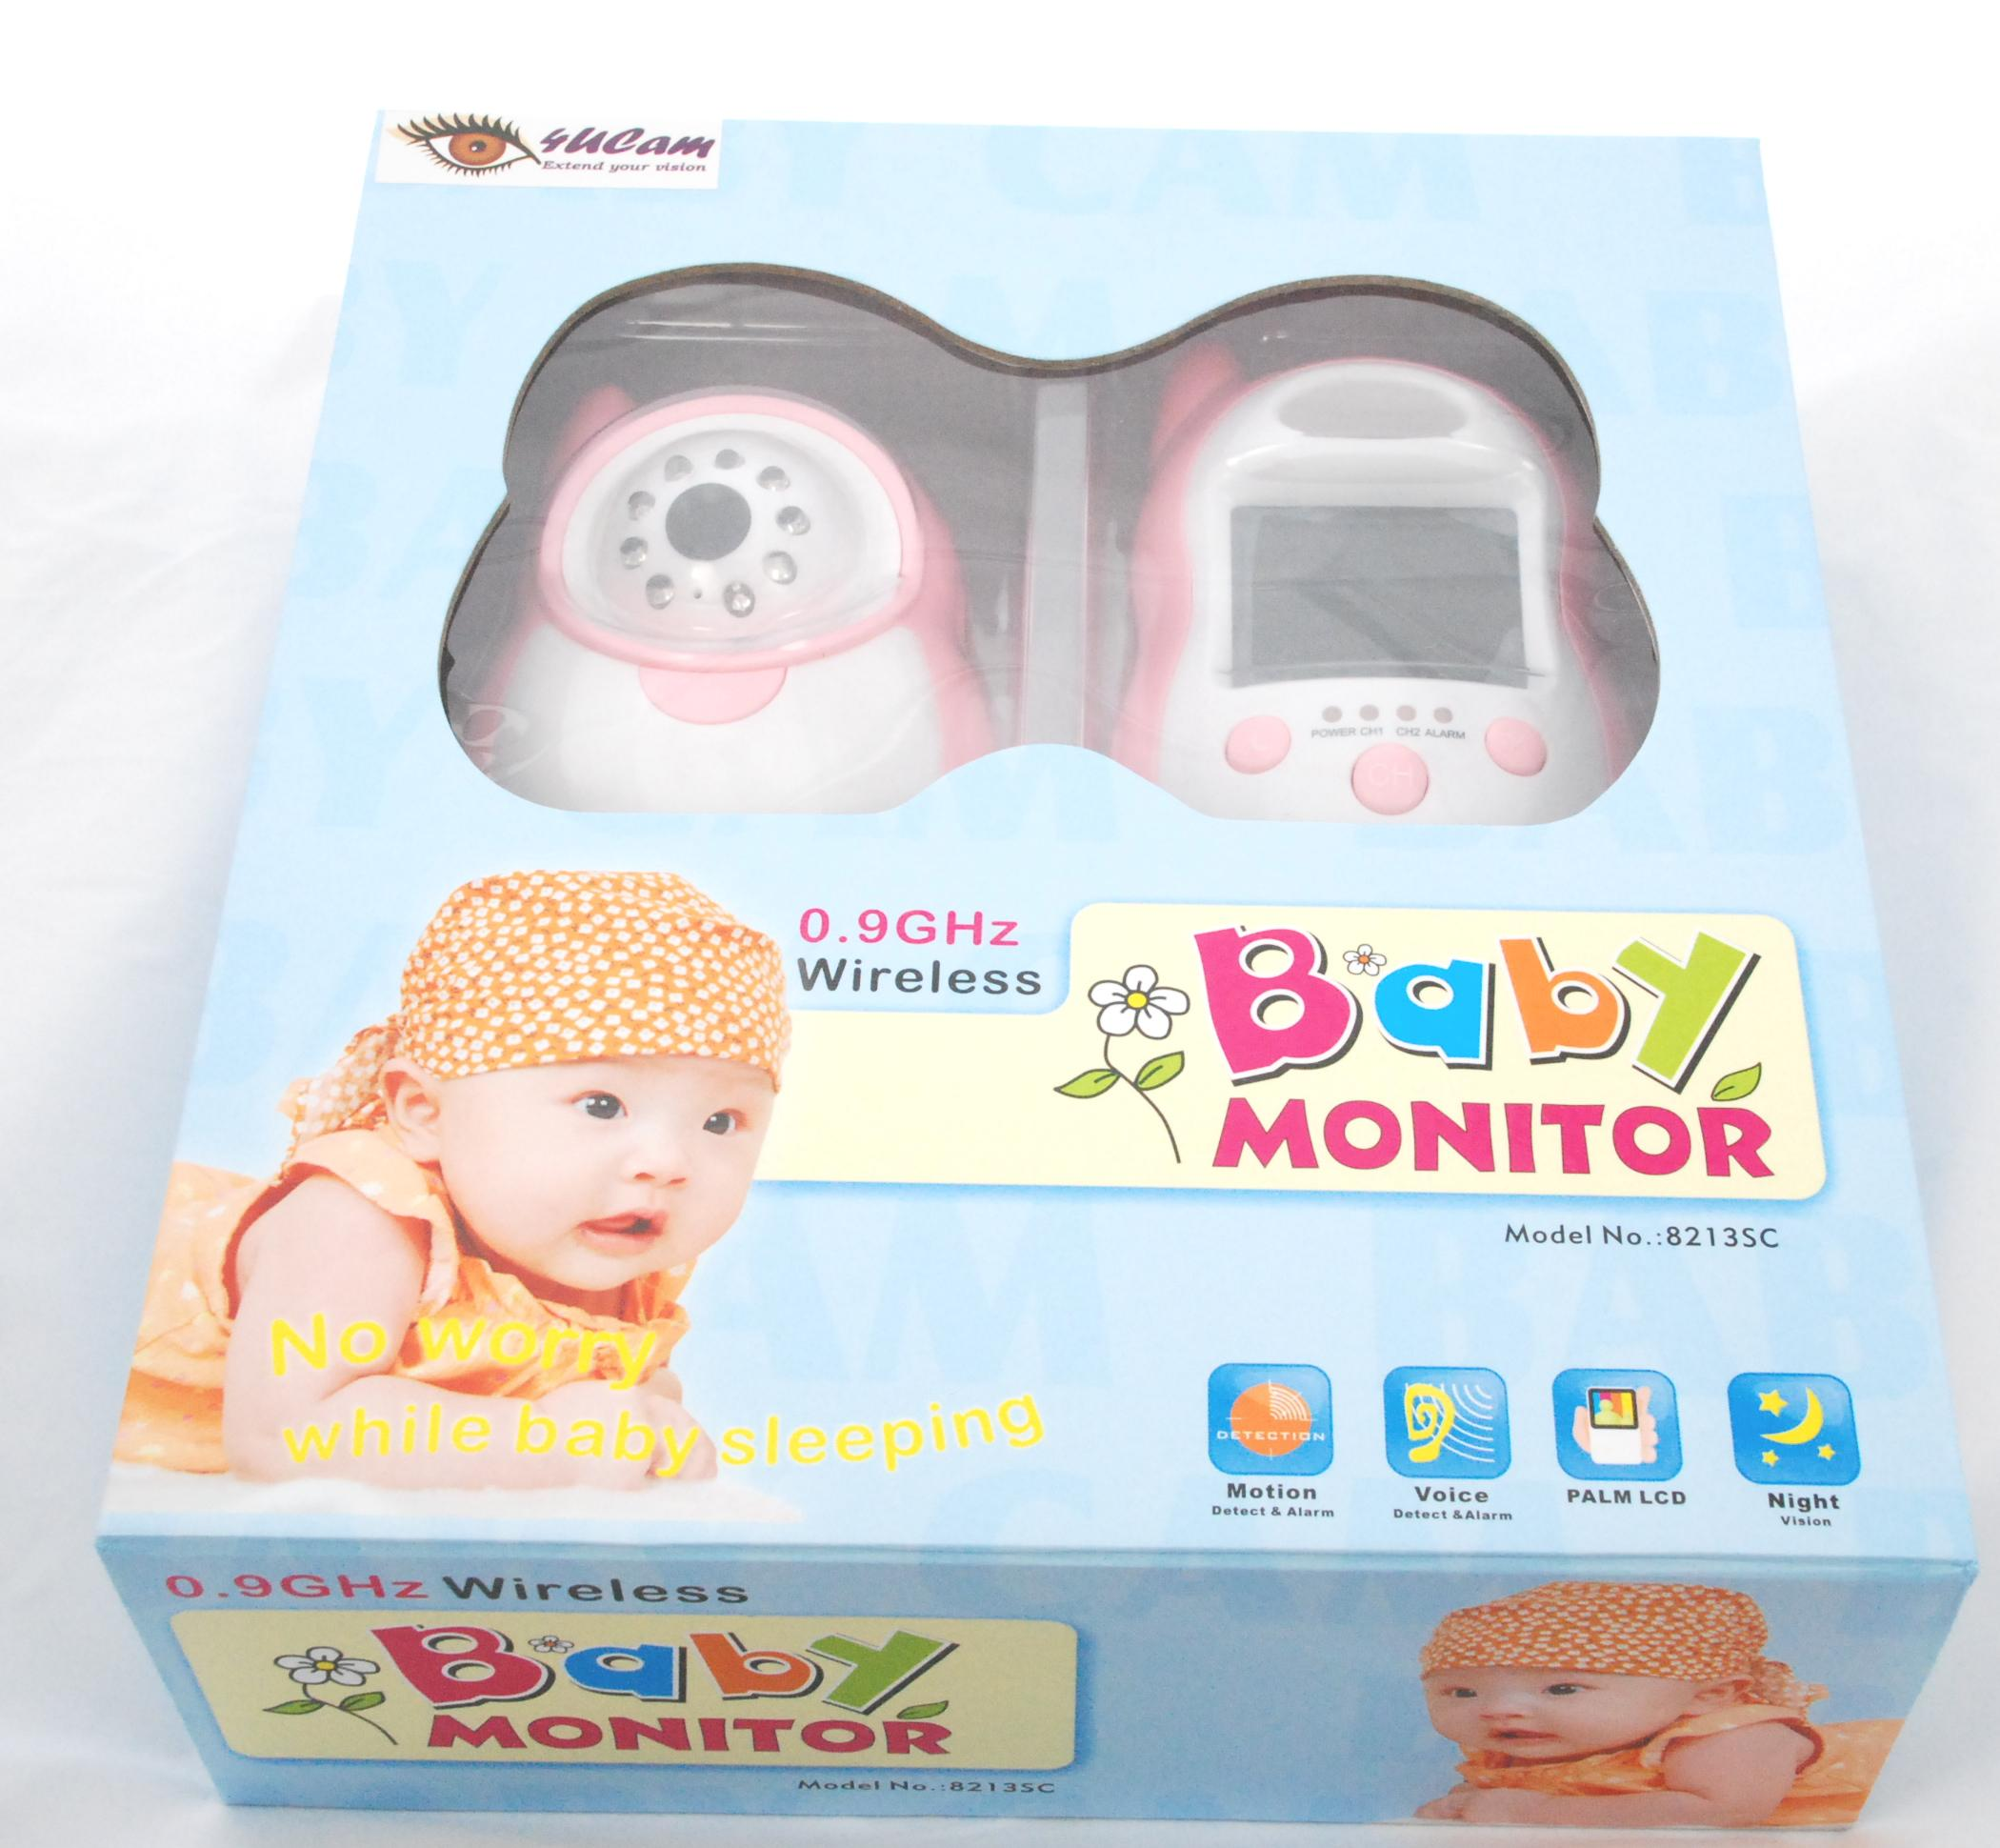 motion detection handheld 2 5 color video baby monitor and 900mhz wireless camera day. Black Bedroom Furniture Sets. Home Design Ideas